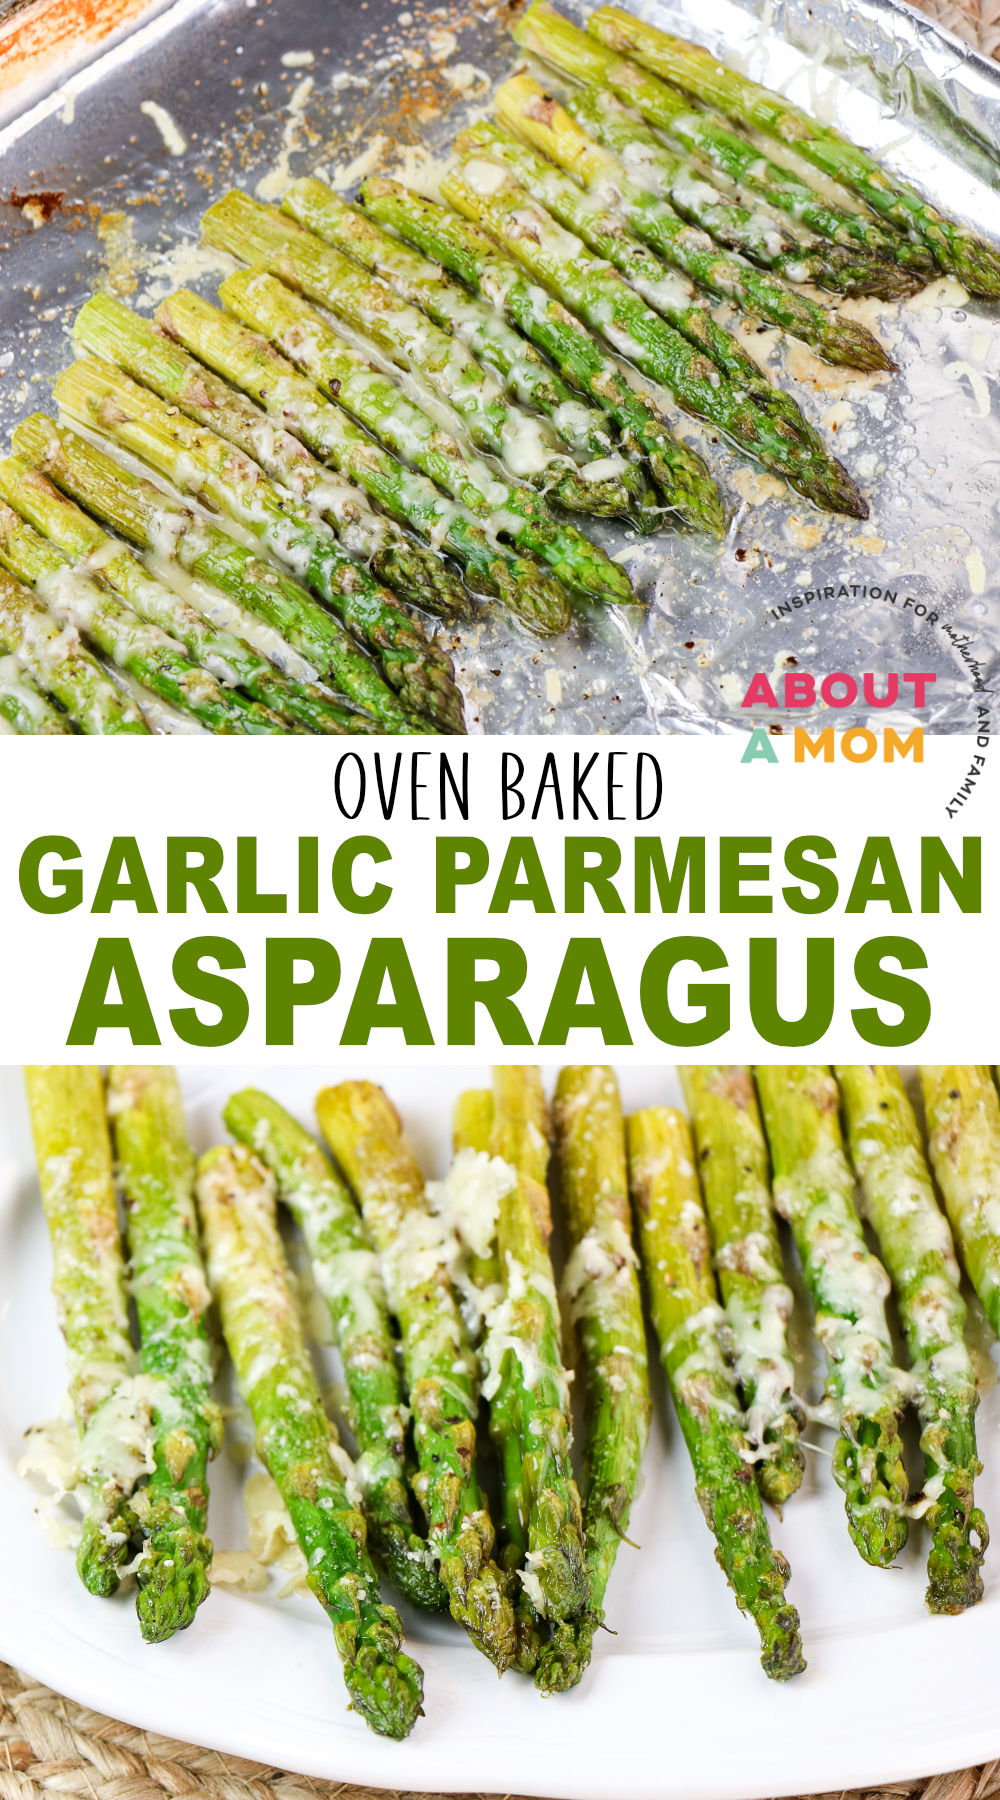 This Oven Baked Asparagus recipe makes a simple side dish that combines the flavors of garlic and parmesan. Great way to introduce a new vegetable side dish at dinner!